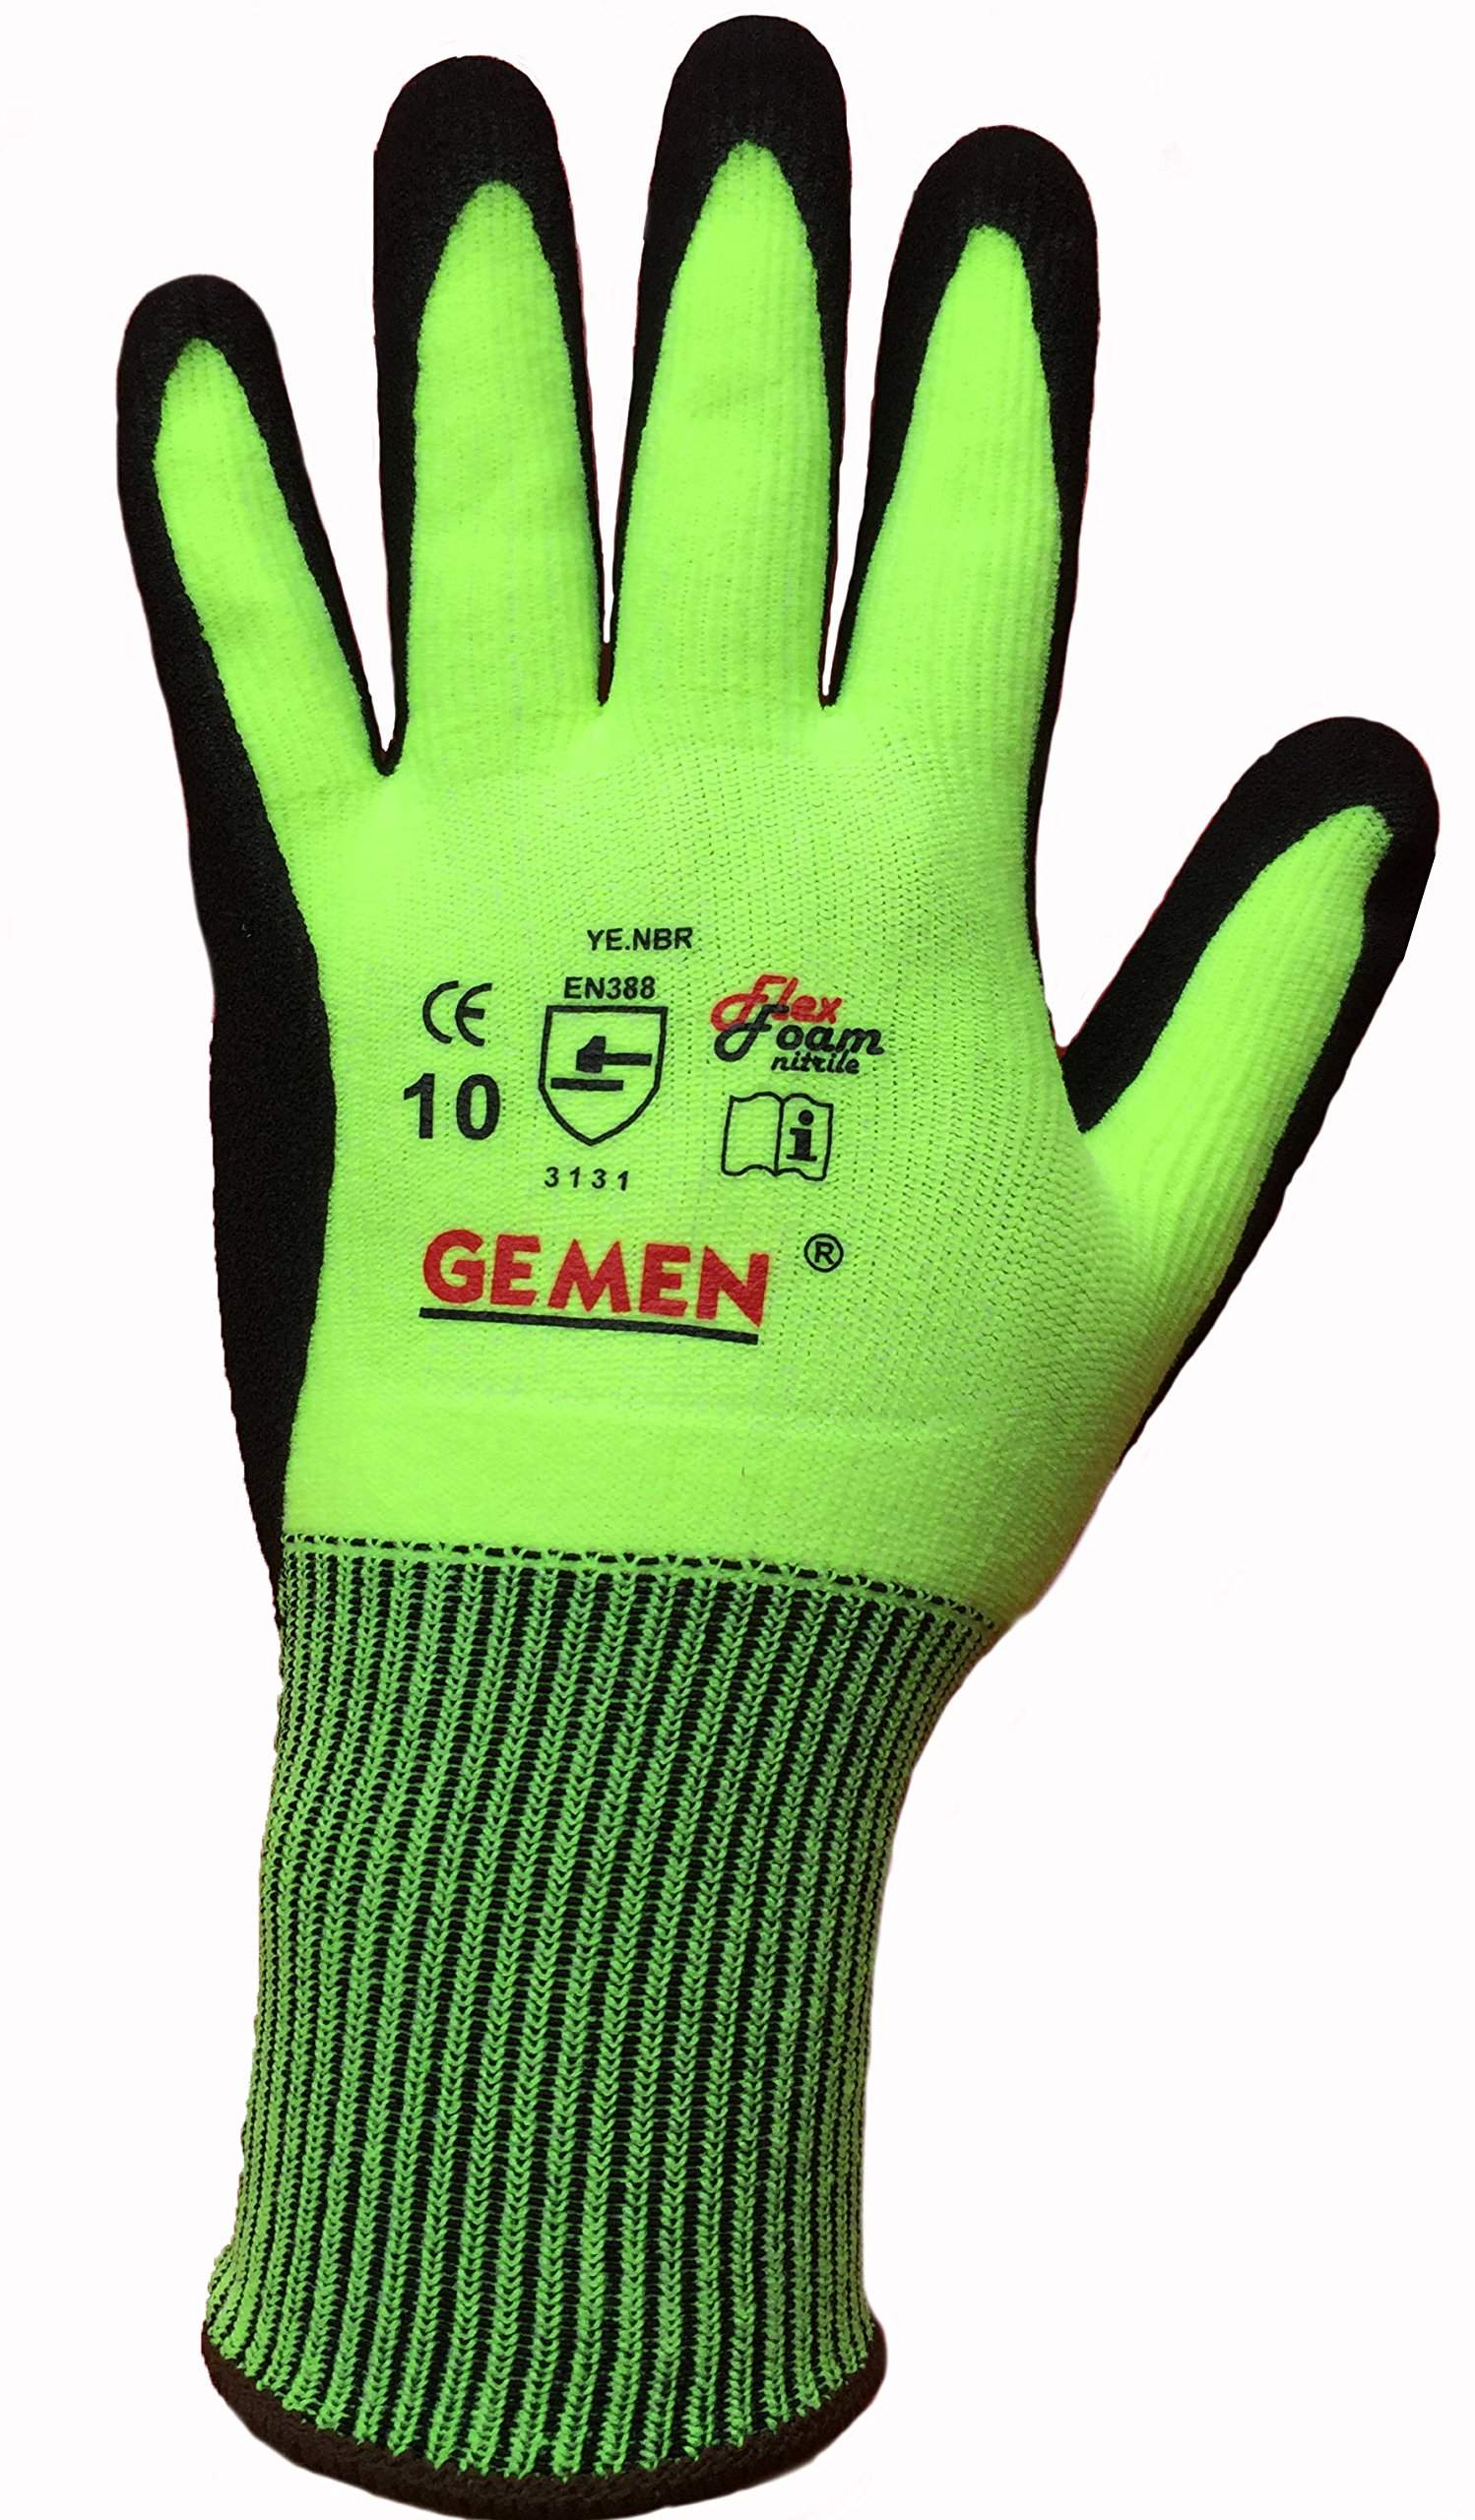 Battery1inc PA4538 Dozen GEMEN Nitrile Foam Grip Gloves (12 Pack), Large, Green